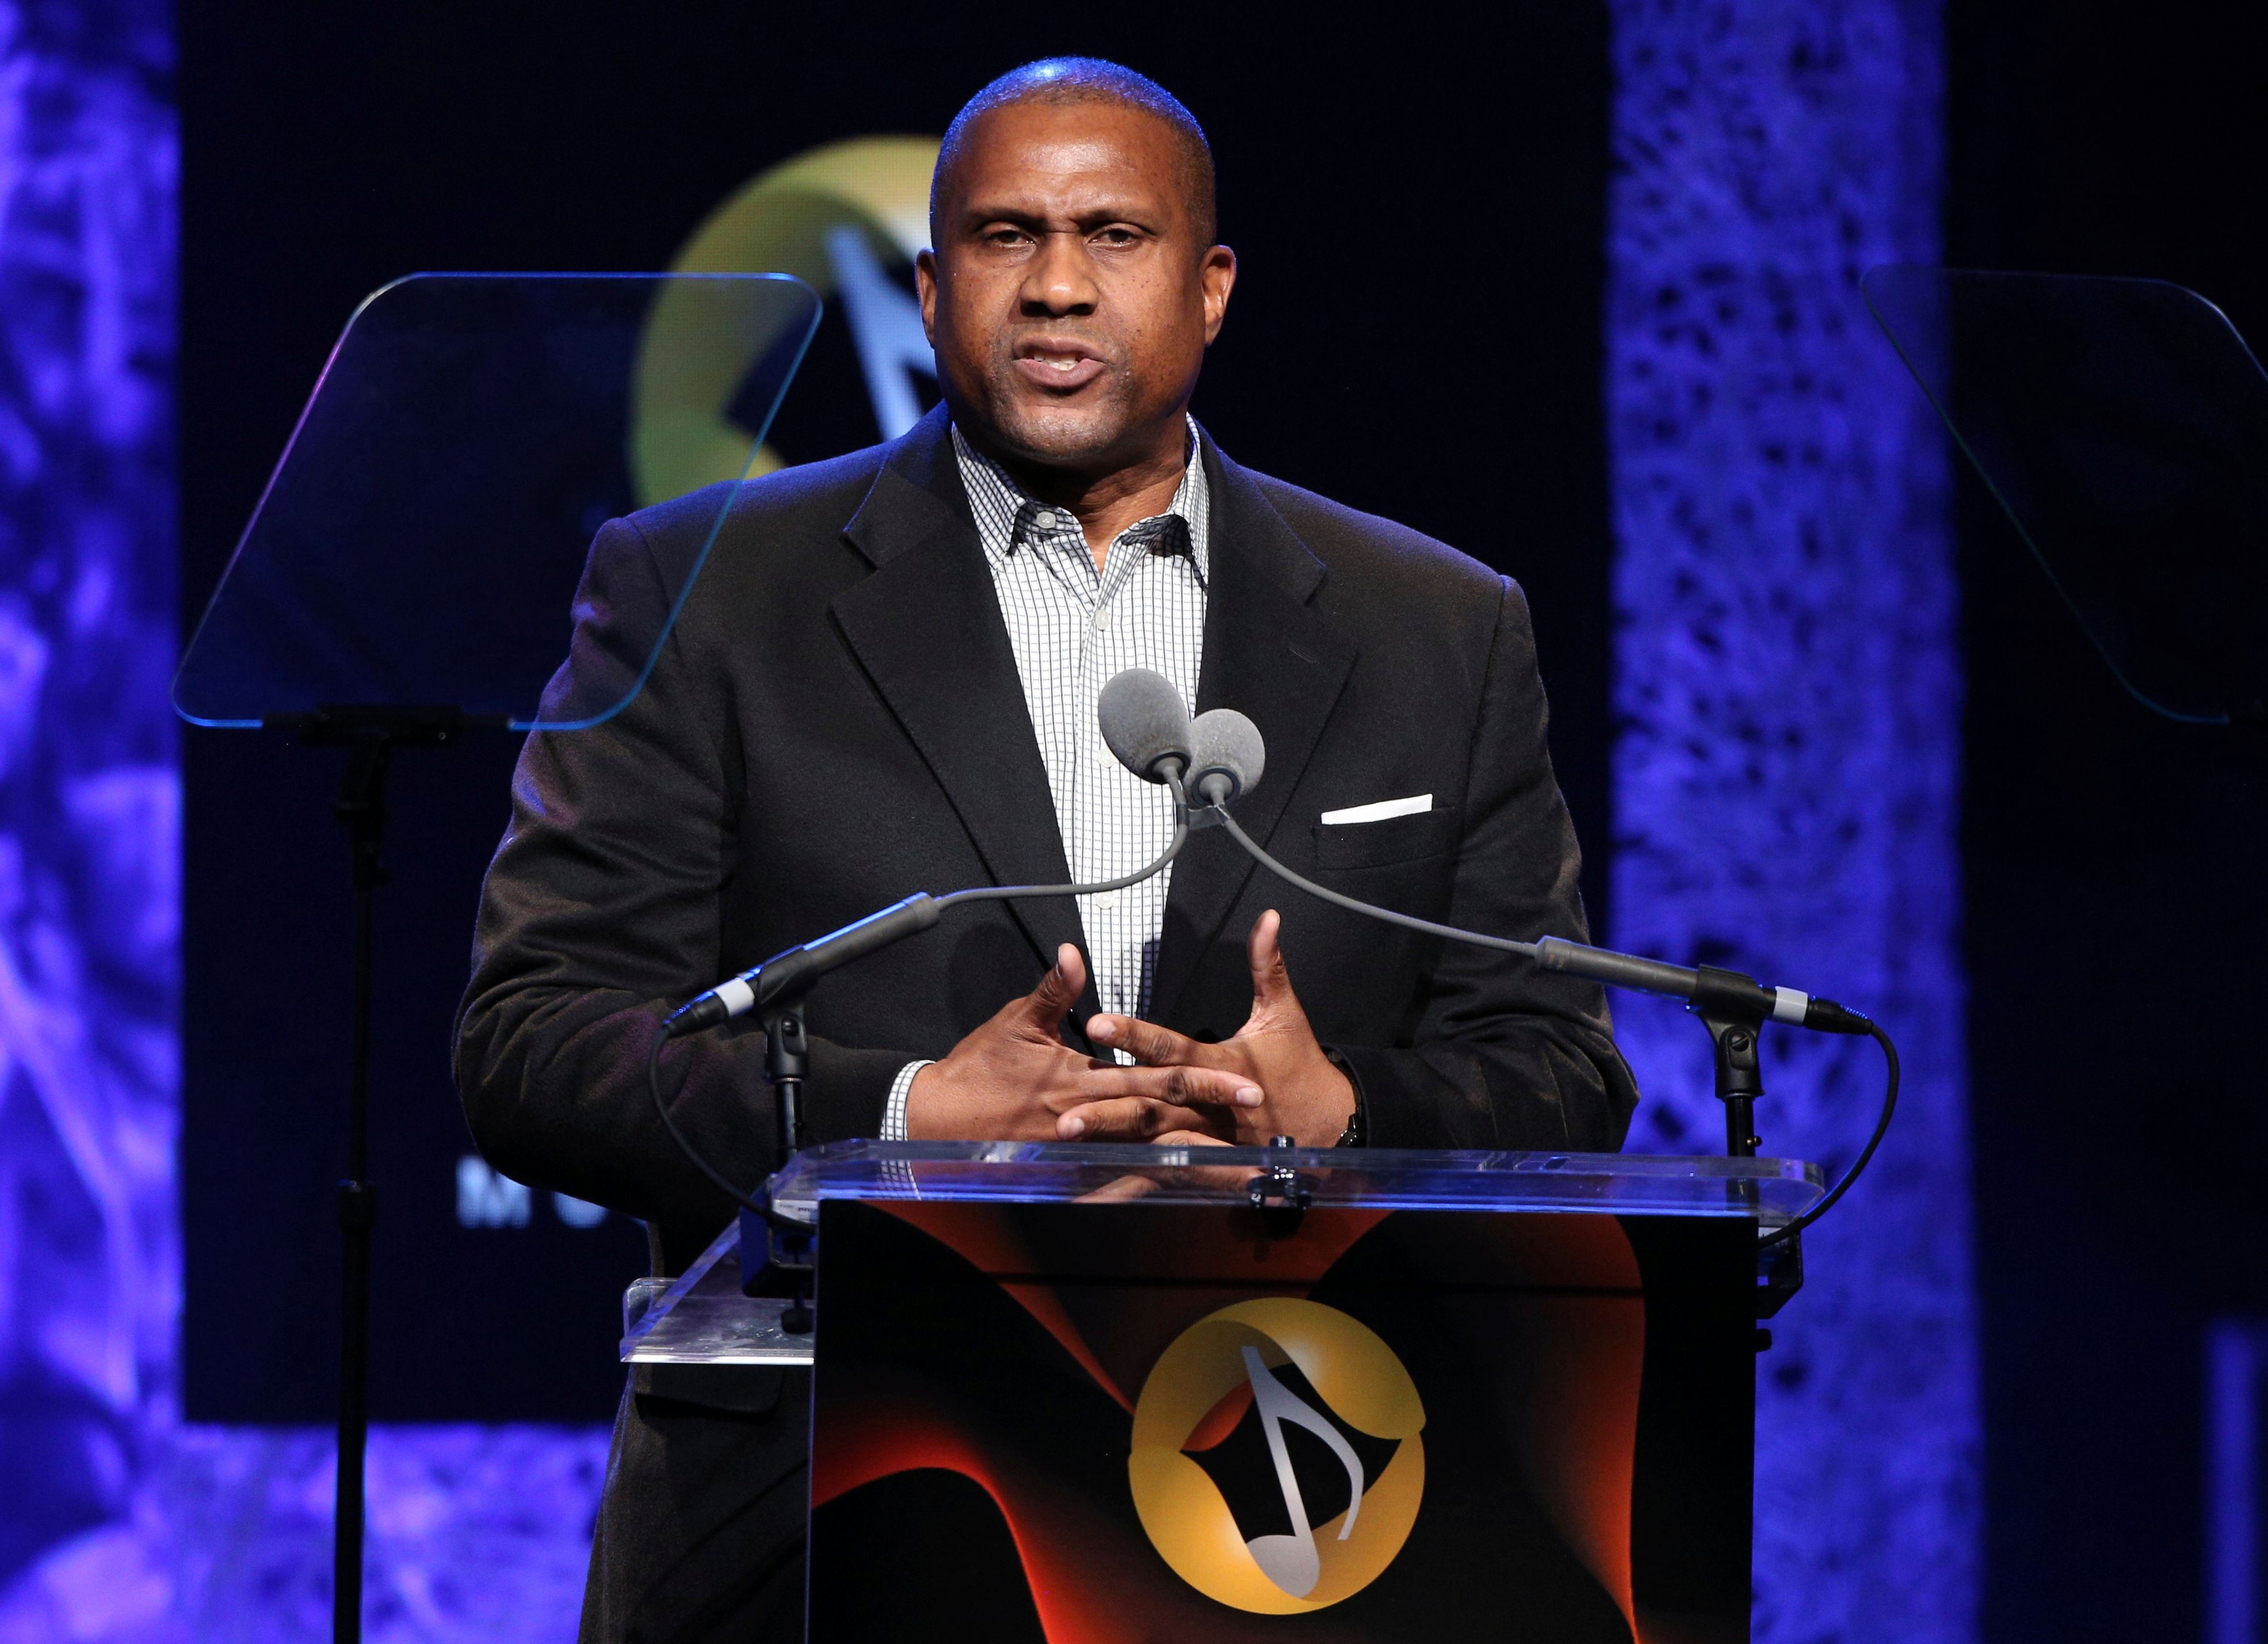 Tavis Smiley's show dropped by PBS amid 'troubling allegations' of misconduct